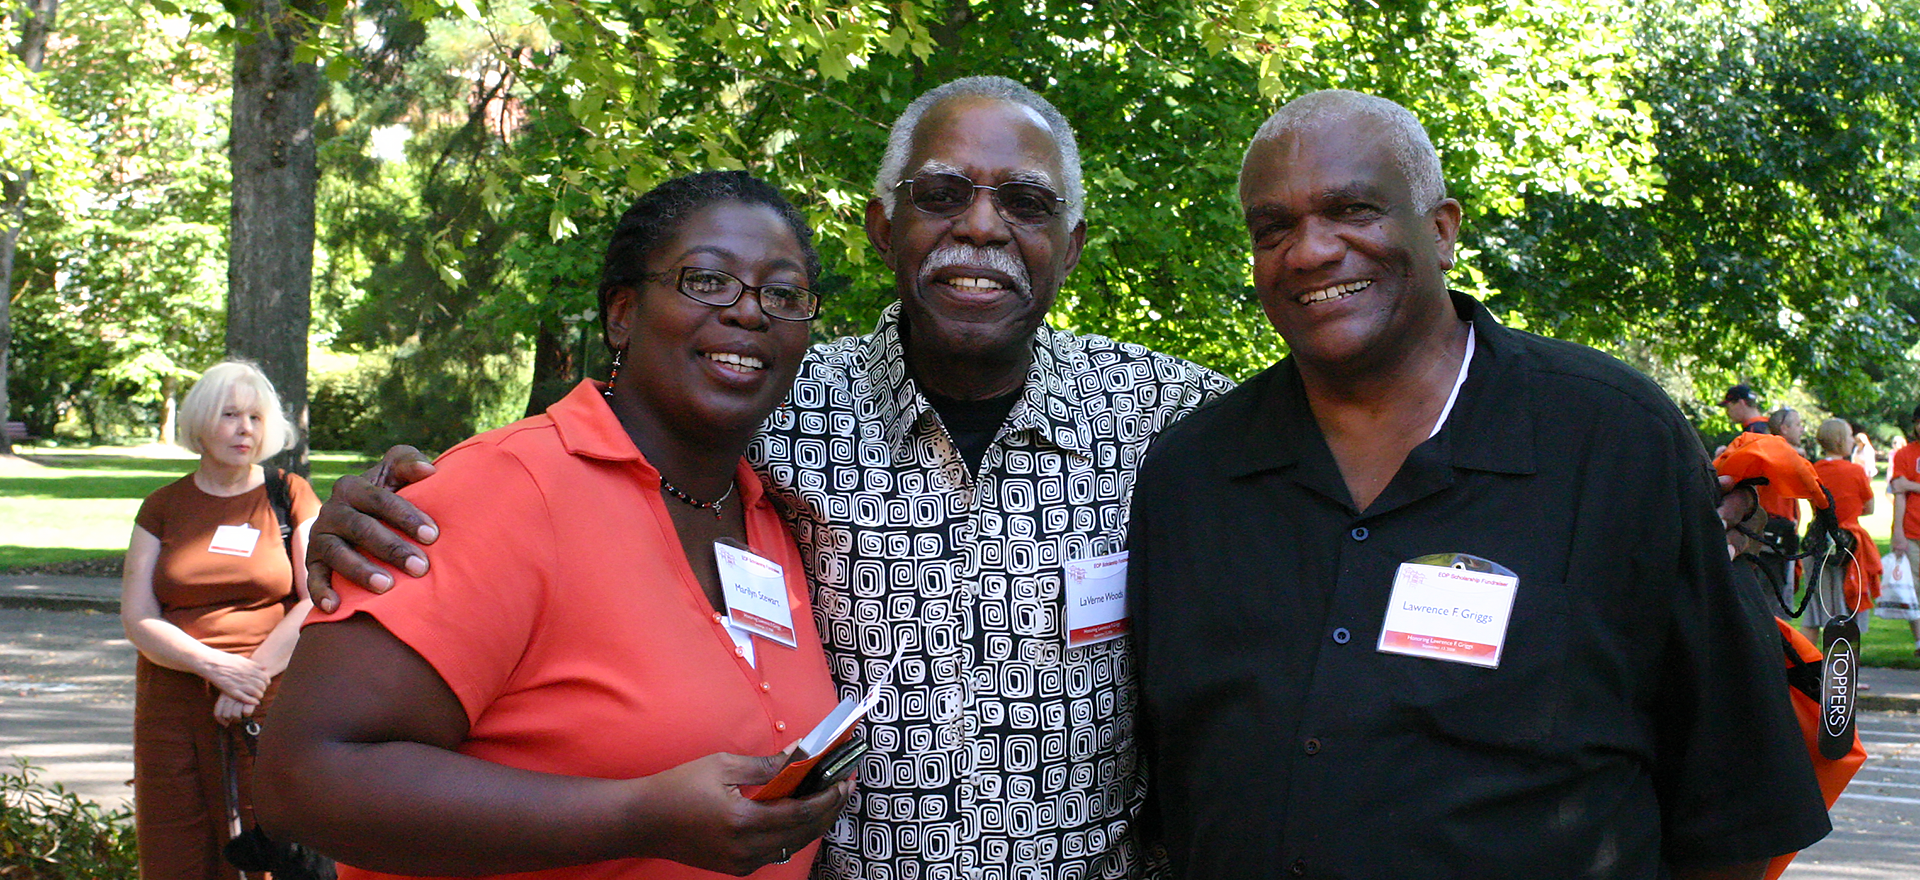 The late Larry Griggs (right), community leader and longtime director of OSU's Educational Opportunities Program. Pictured here with LaVerne Woods and Marilyn Stewart.